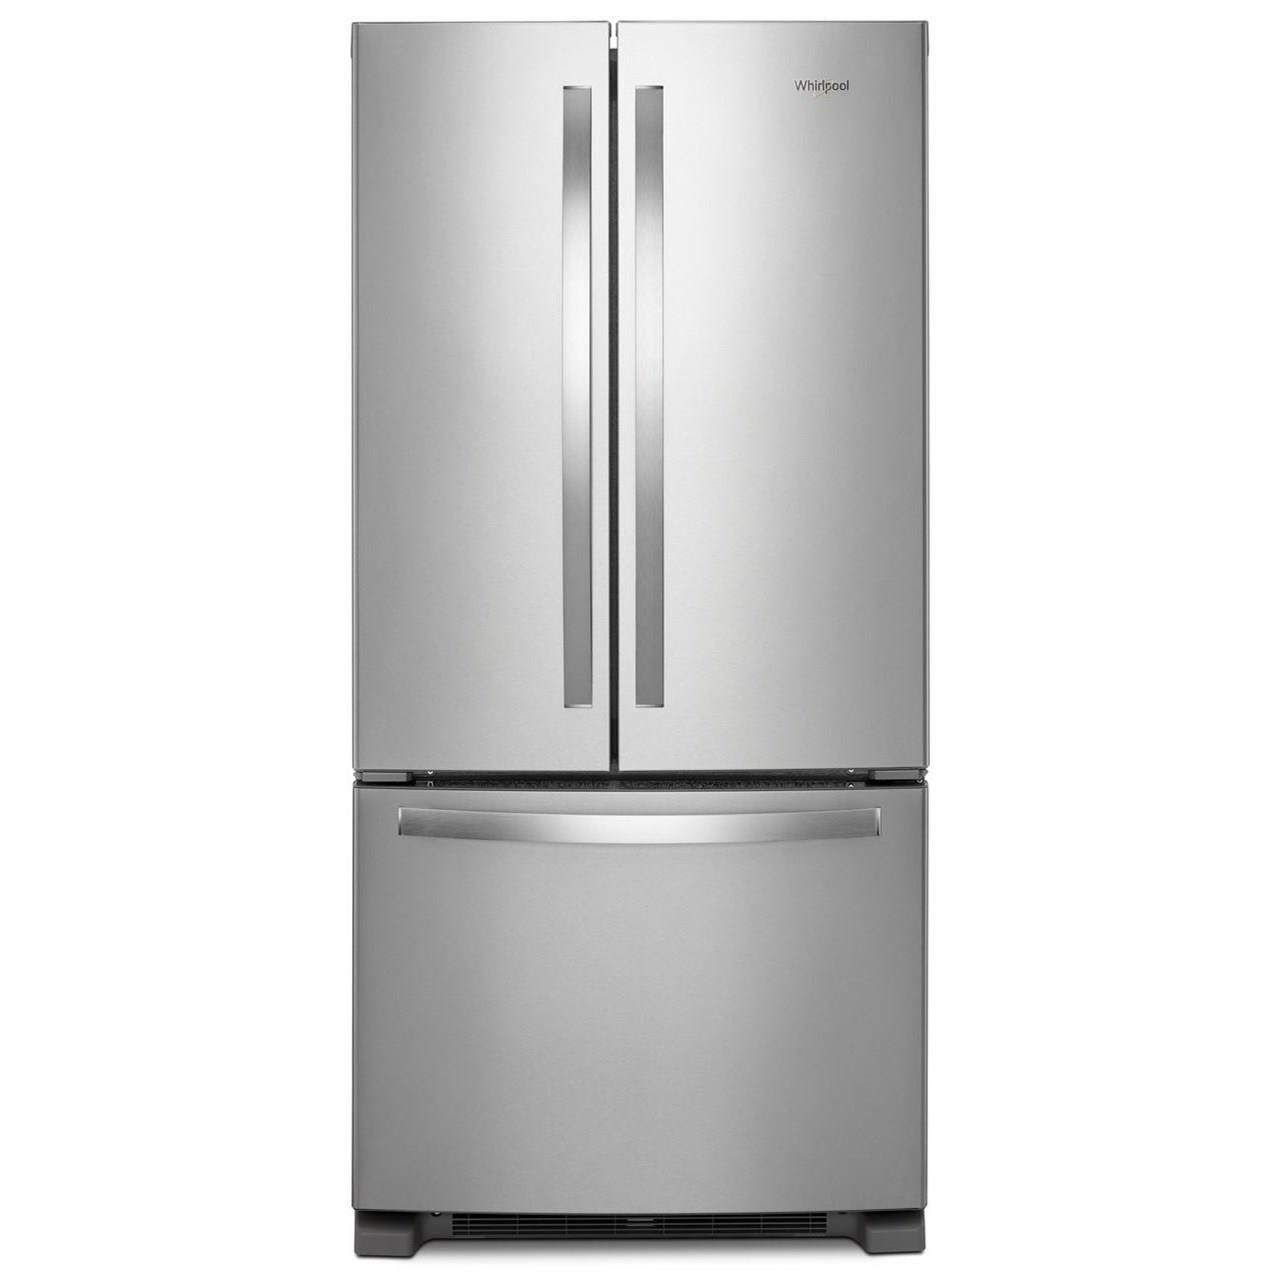 Whirlpool French Door Refrigerators 33 Inch Wide French Door Refrigerator    22 Cu. Ft